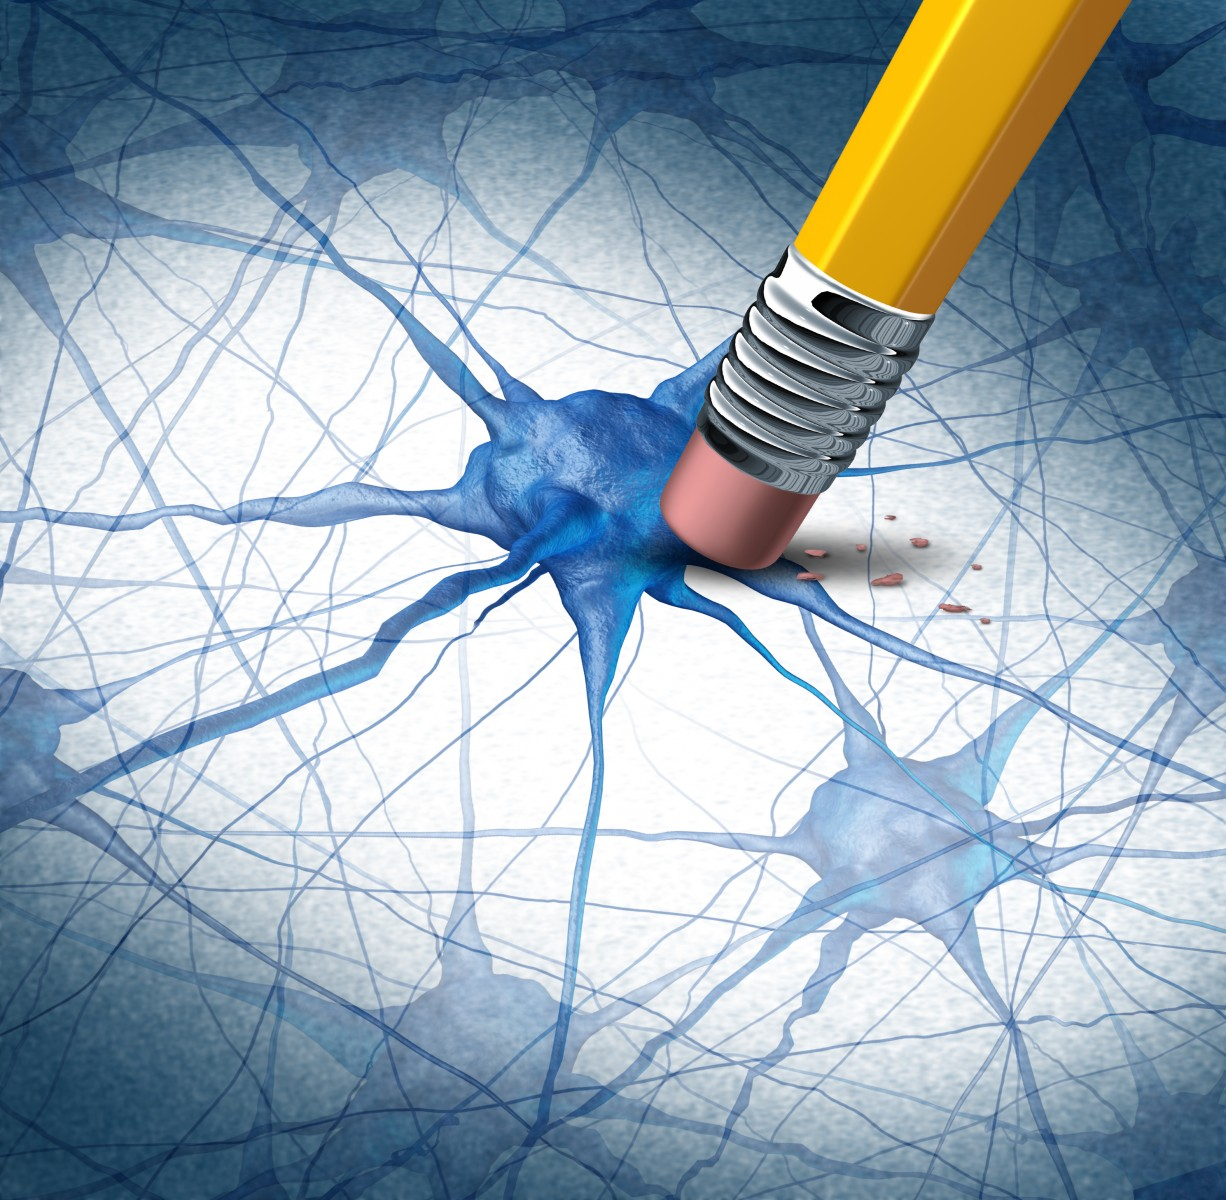 Researchers Inhibit Production of Beta Amyloid Peptides in Alzheimer's Disease Mouse Models